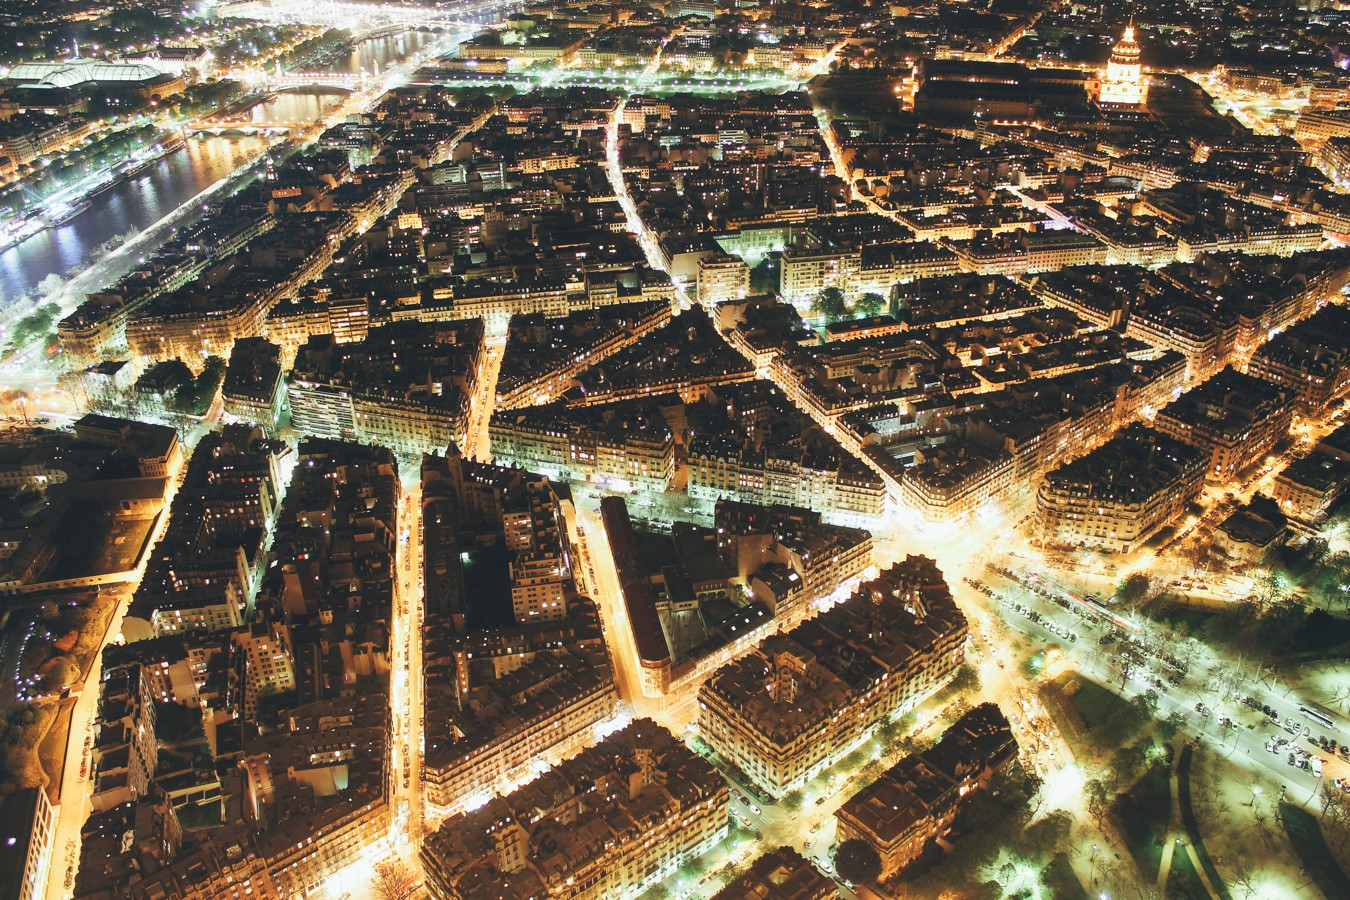 Things to do in Paris - Take in the view from the top of the Eiffel Tower (9)